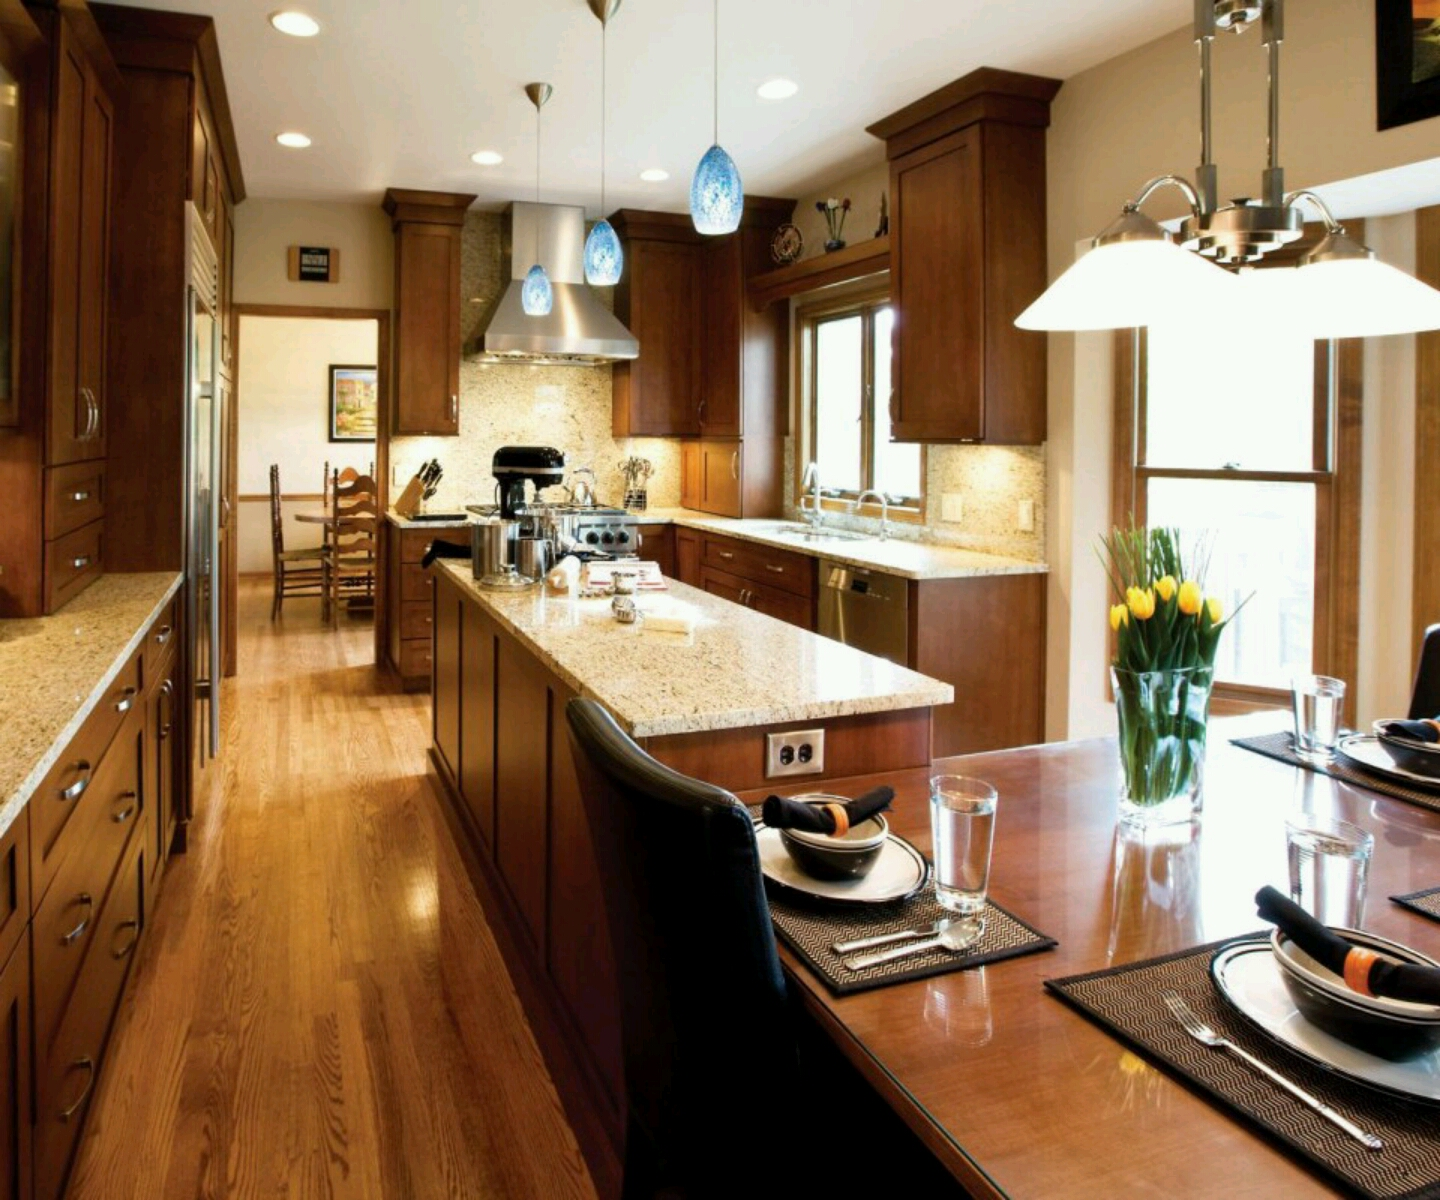 New home designs latest kitchen cabinets designs modern homes - New home kitchen designs ideas ...